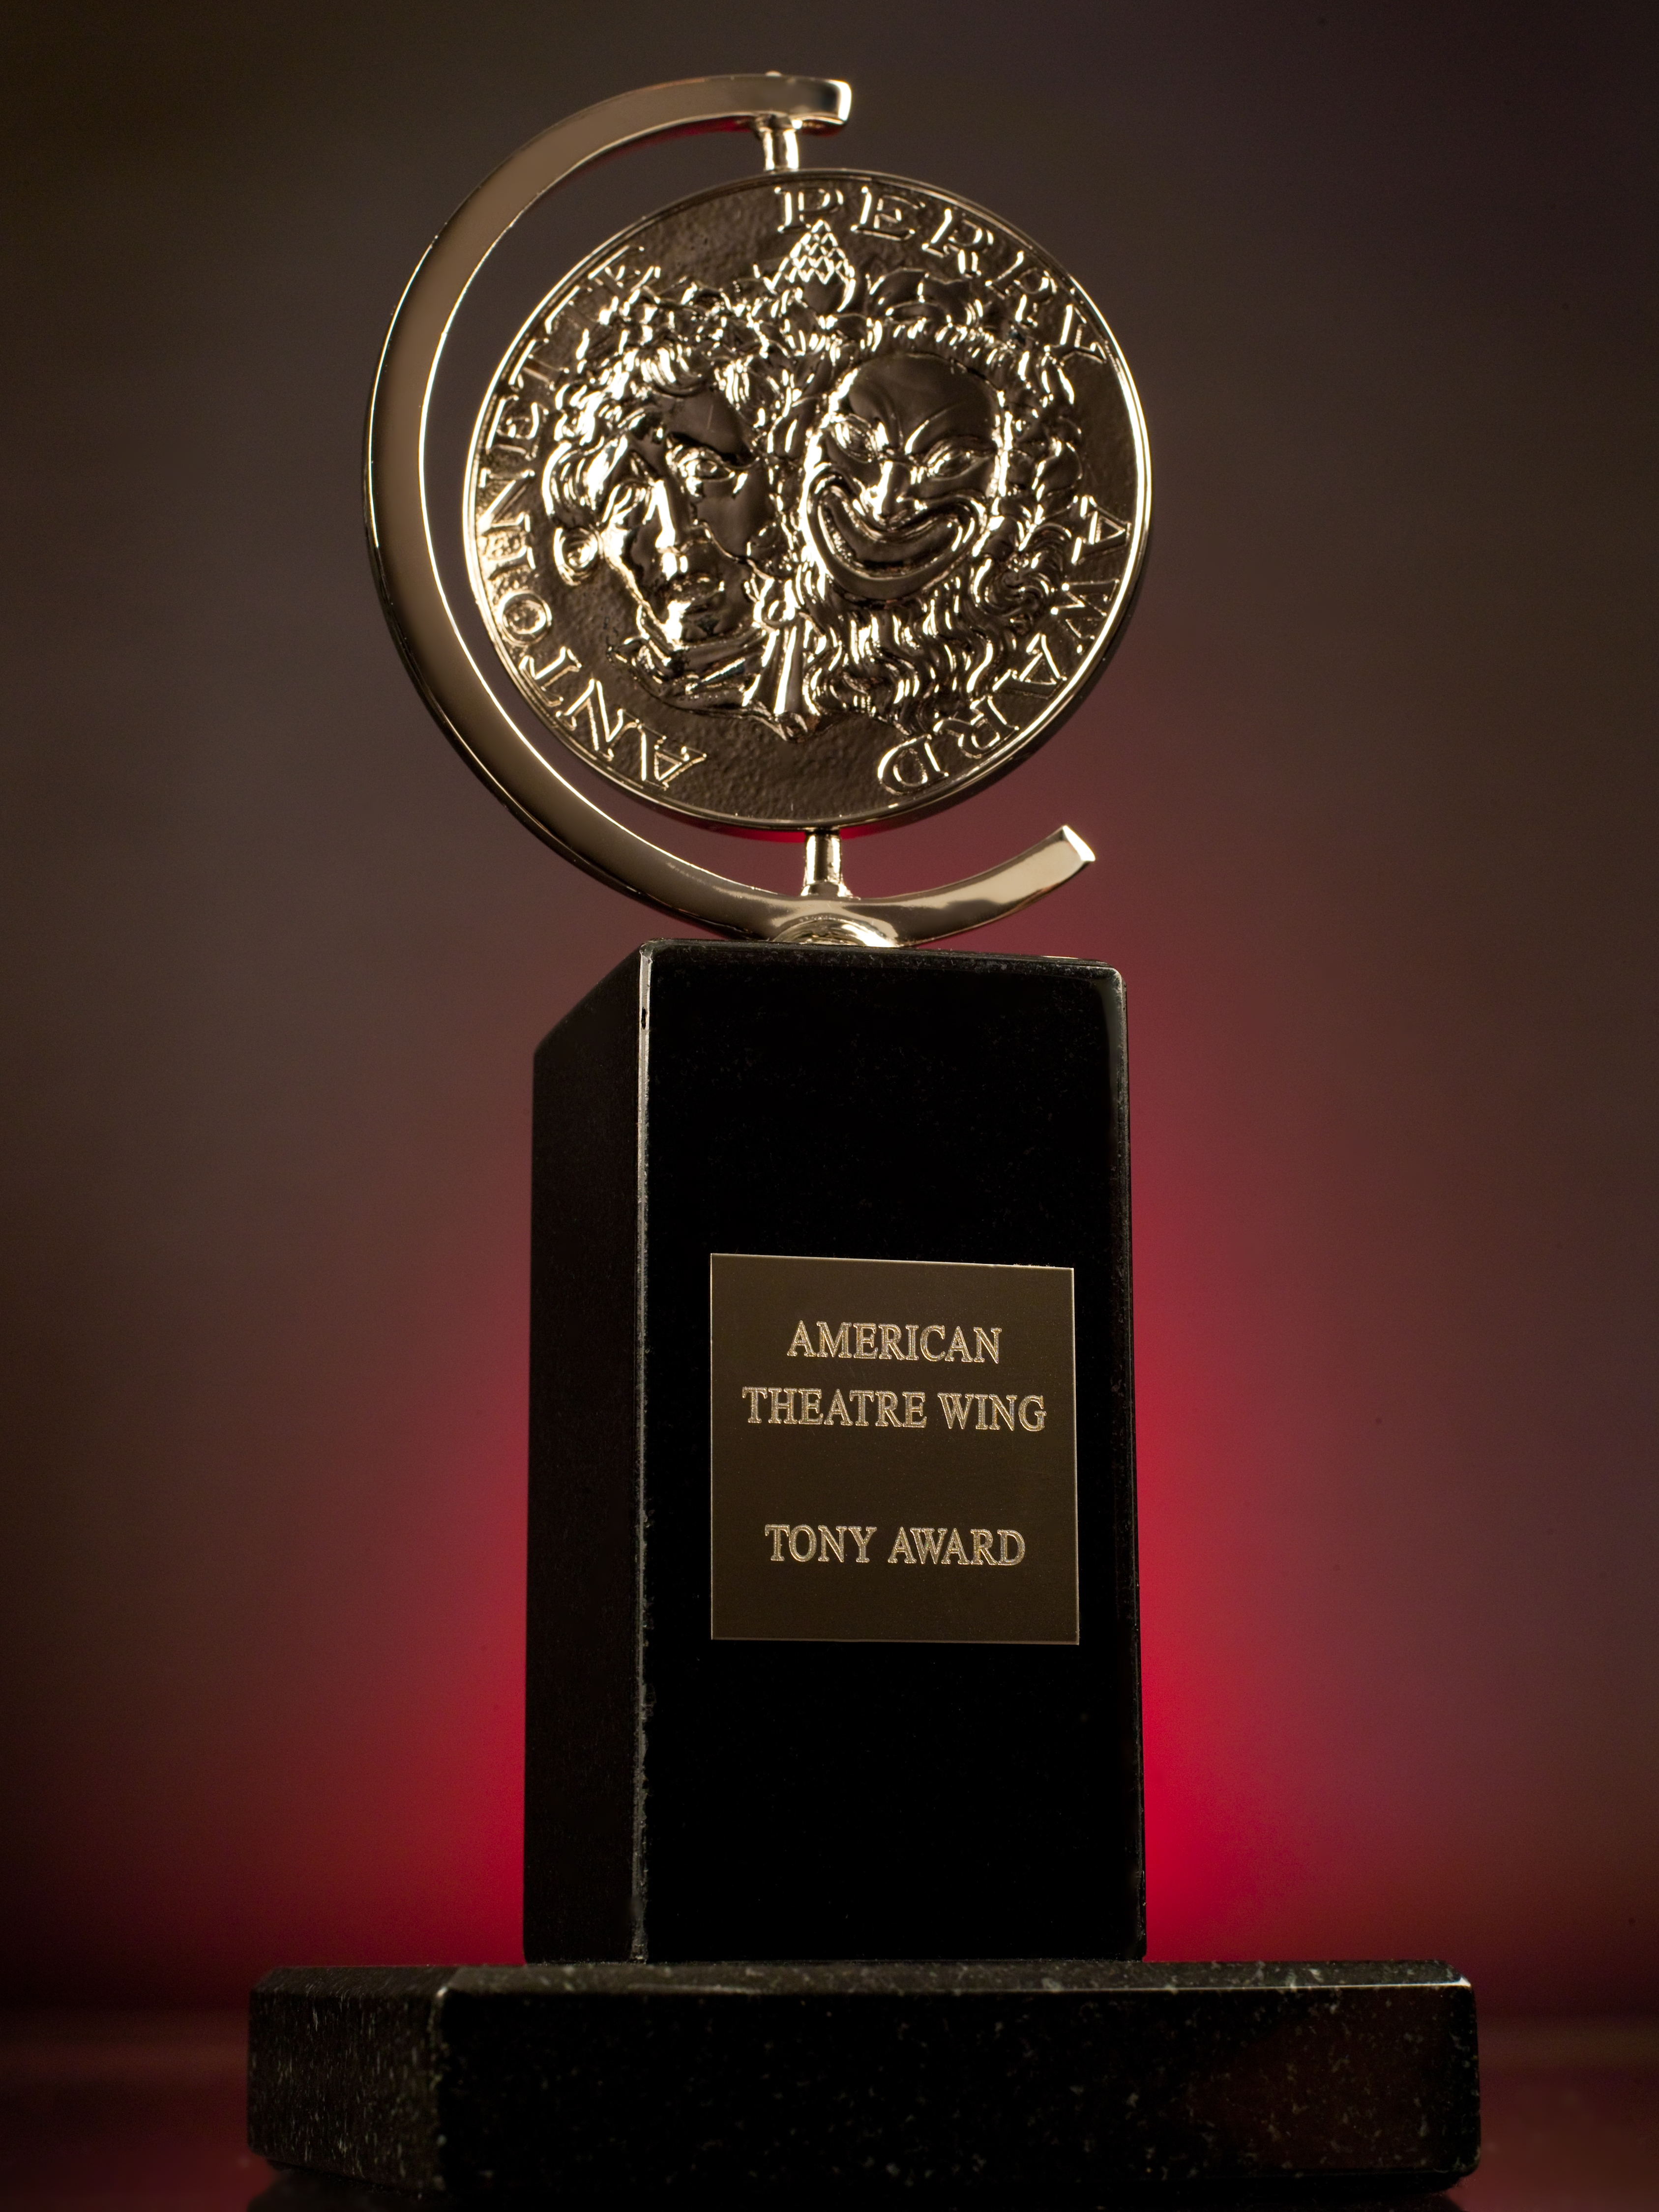 Bww Blog My Predictions For The 2015 Tony Awards